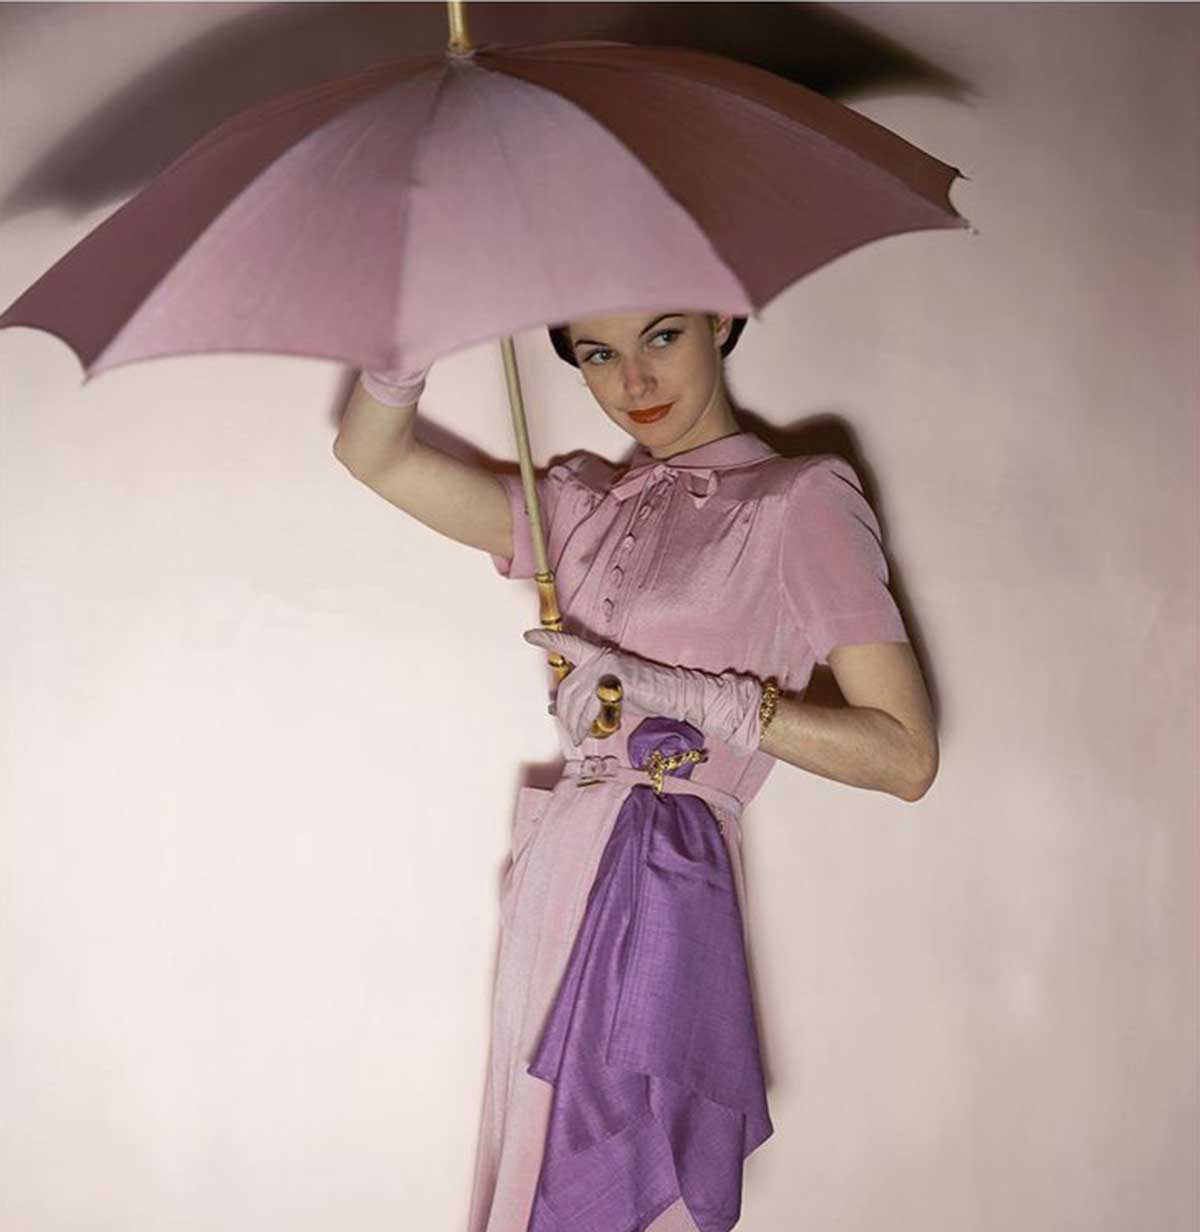 Umbrella---1944-Photo-John-Rawlings